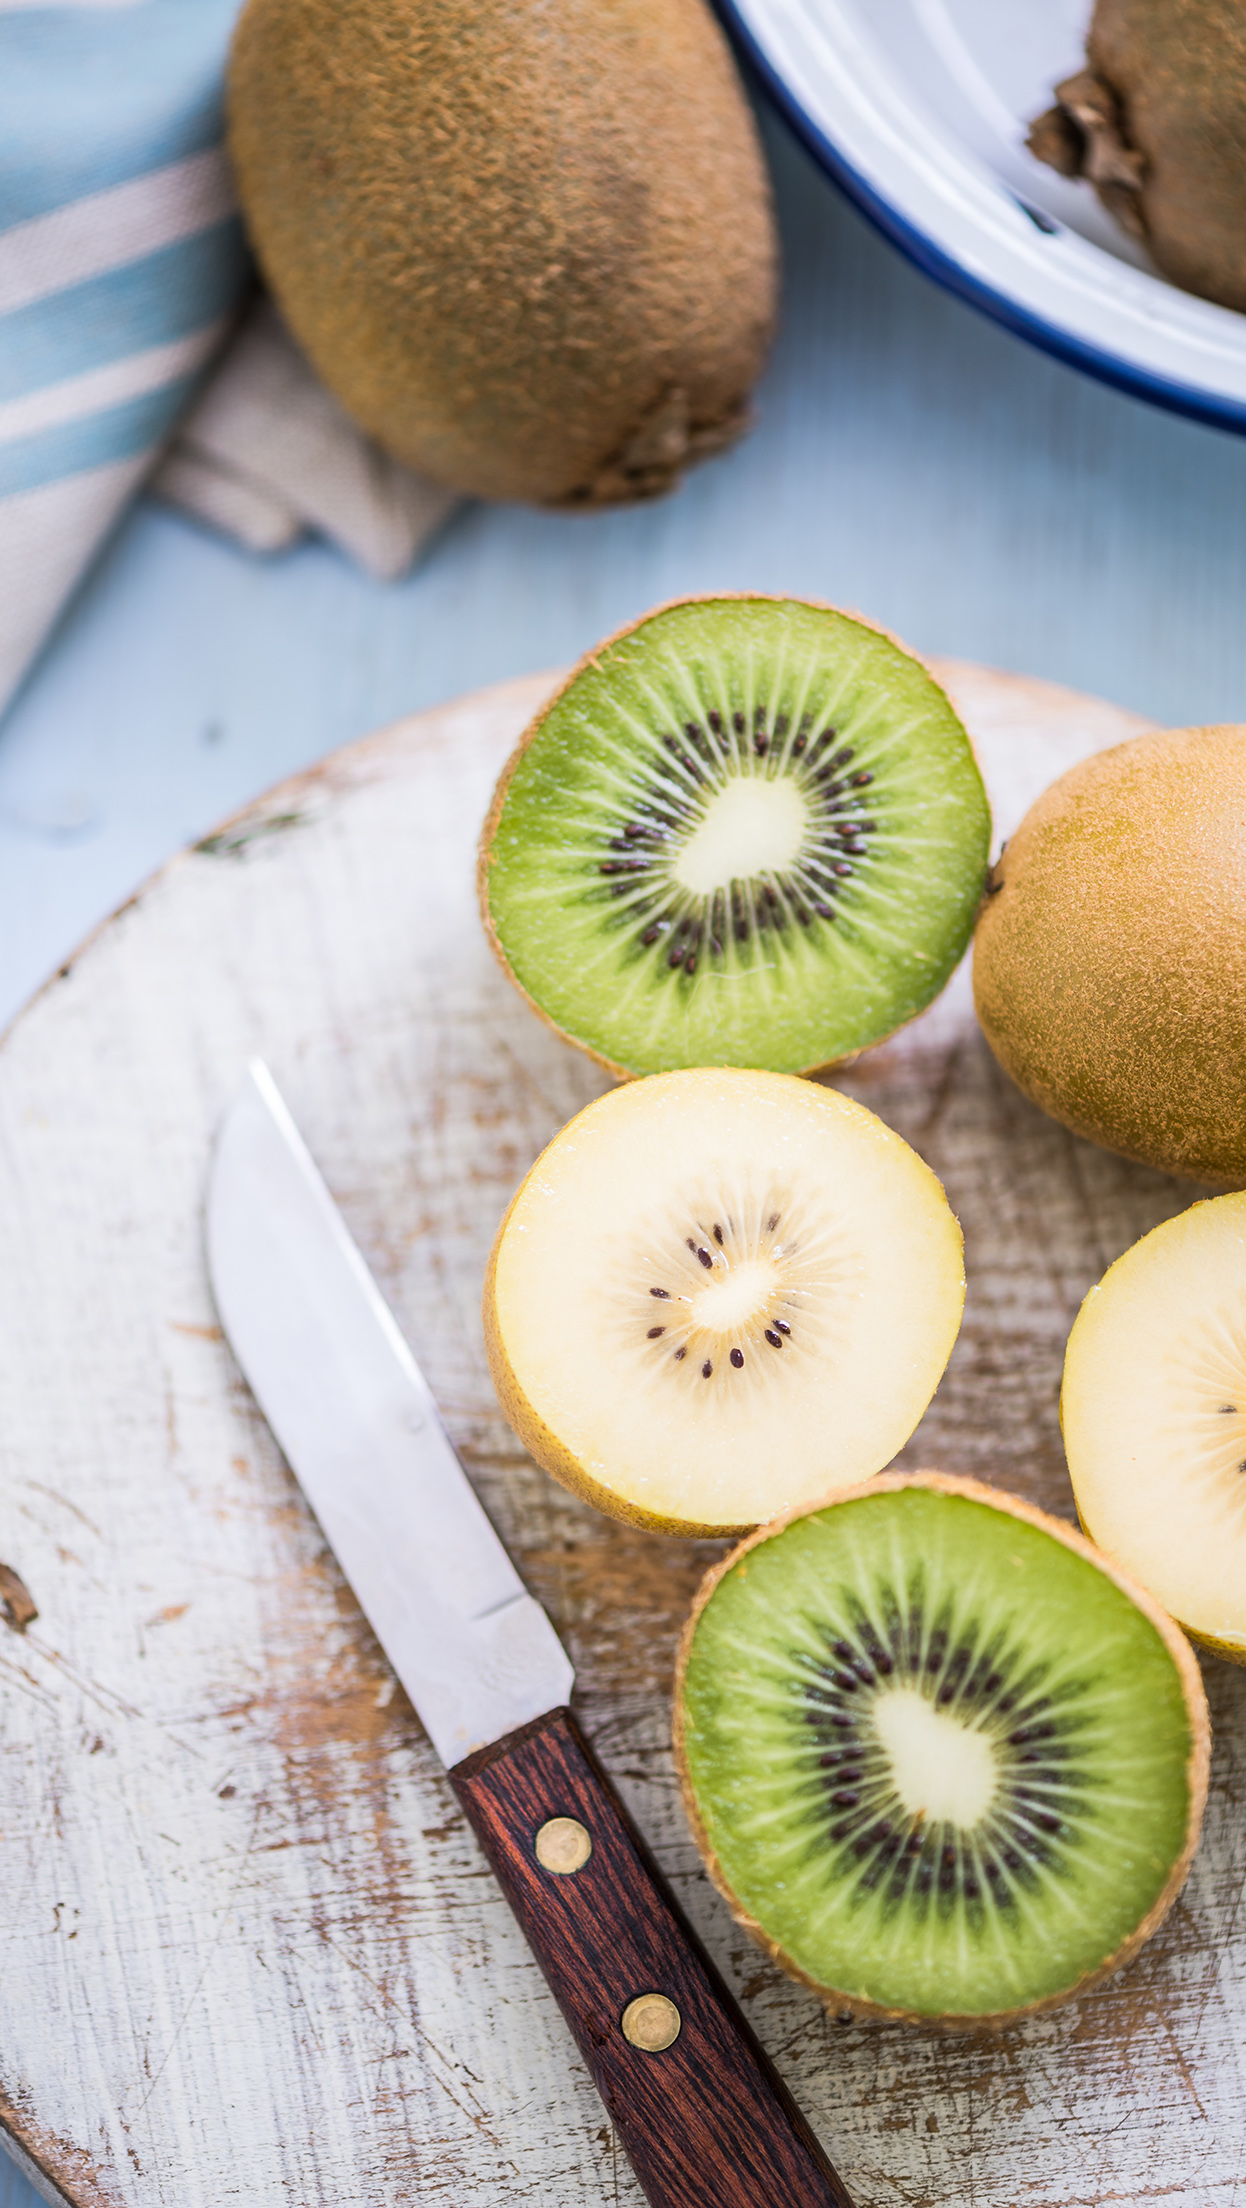 kiwi gold | Flick on food